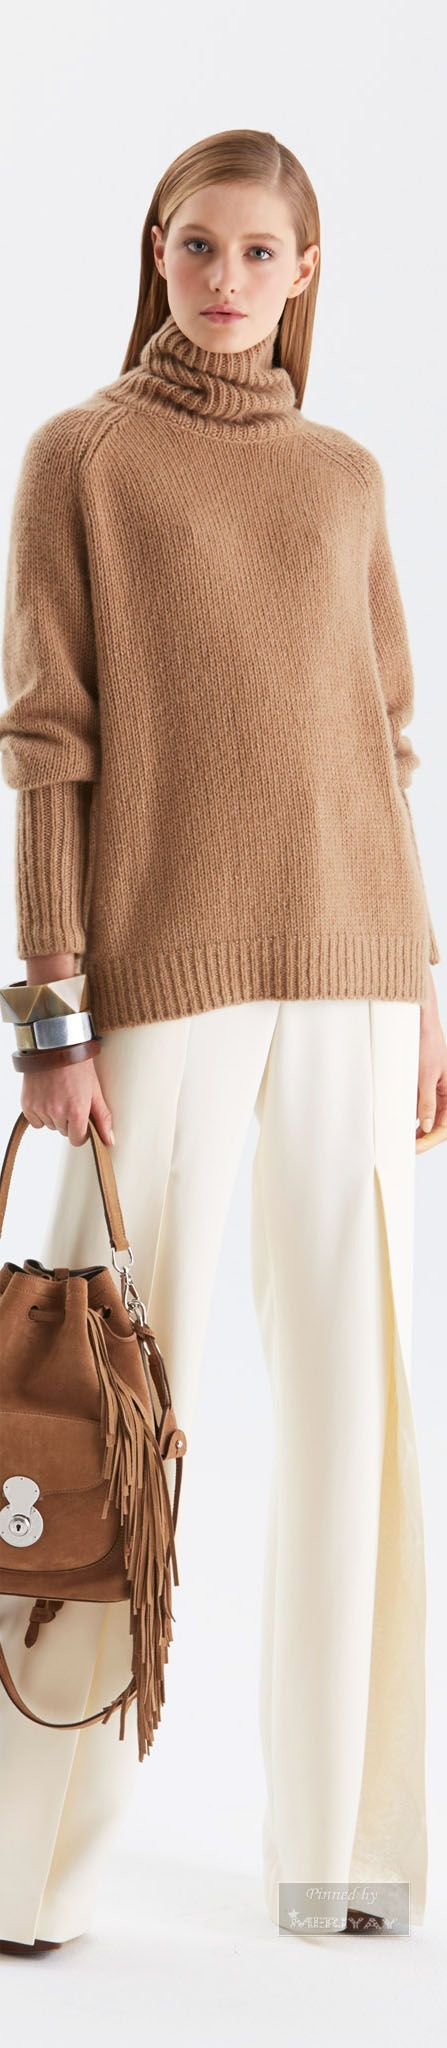 Ralph Lauren.Pre-Fall 2015. Brown sweater white trousers bracelets. Women fashion, clothing